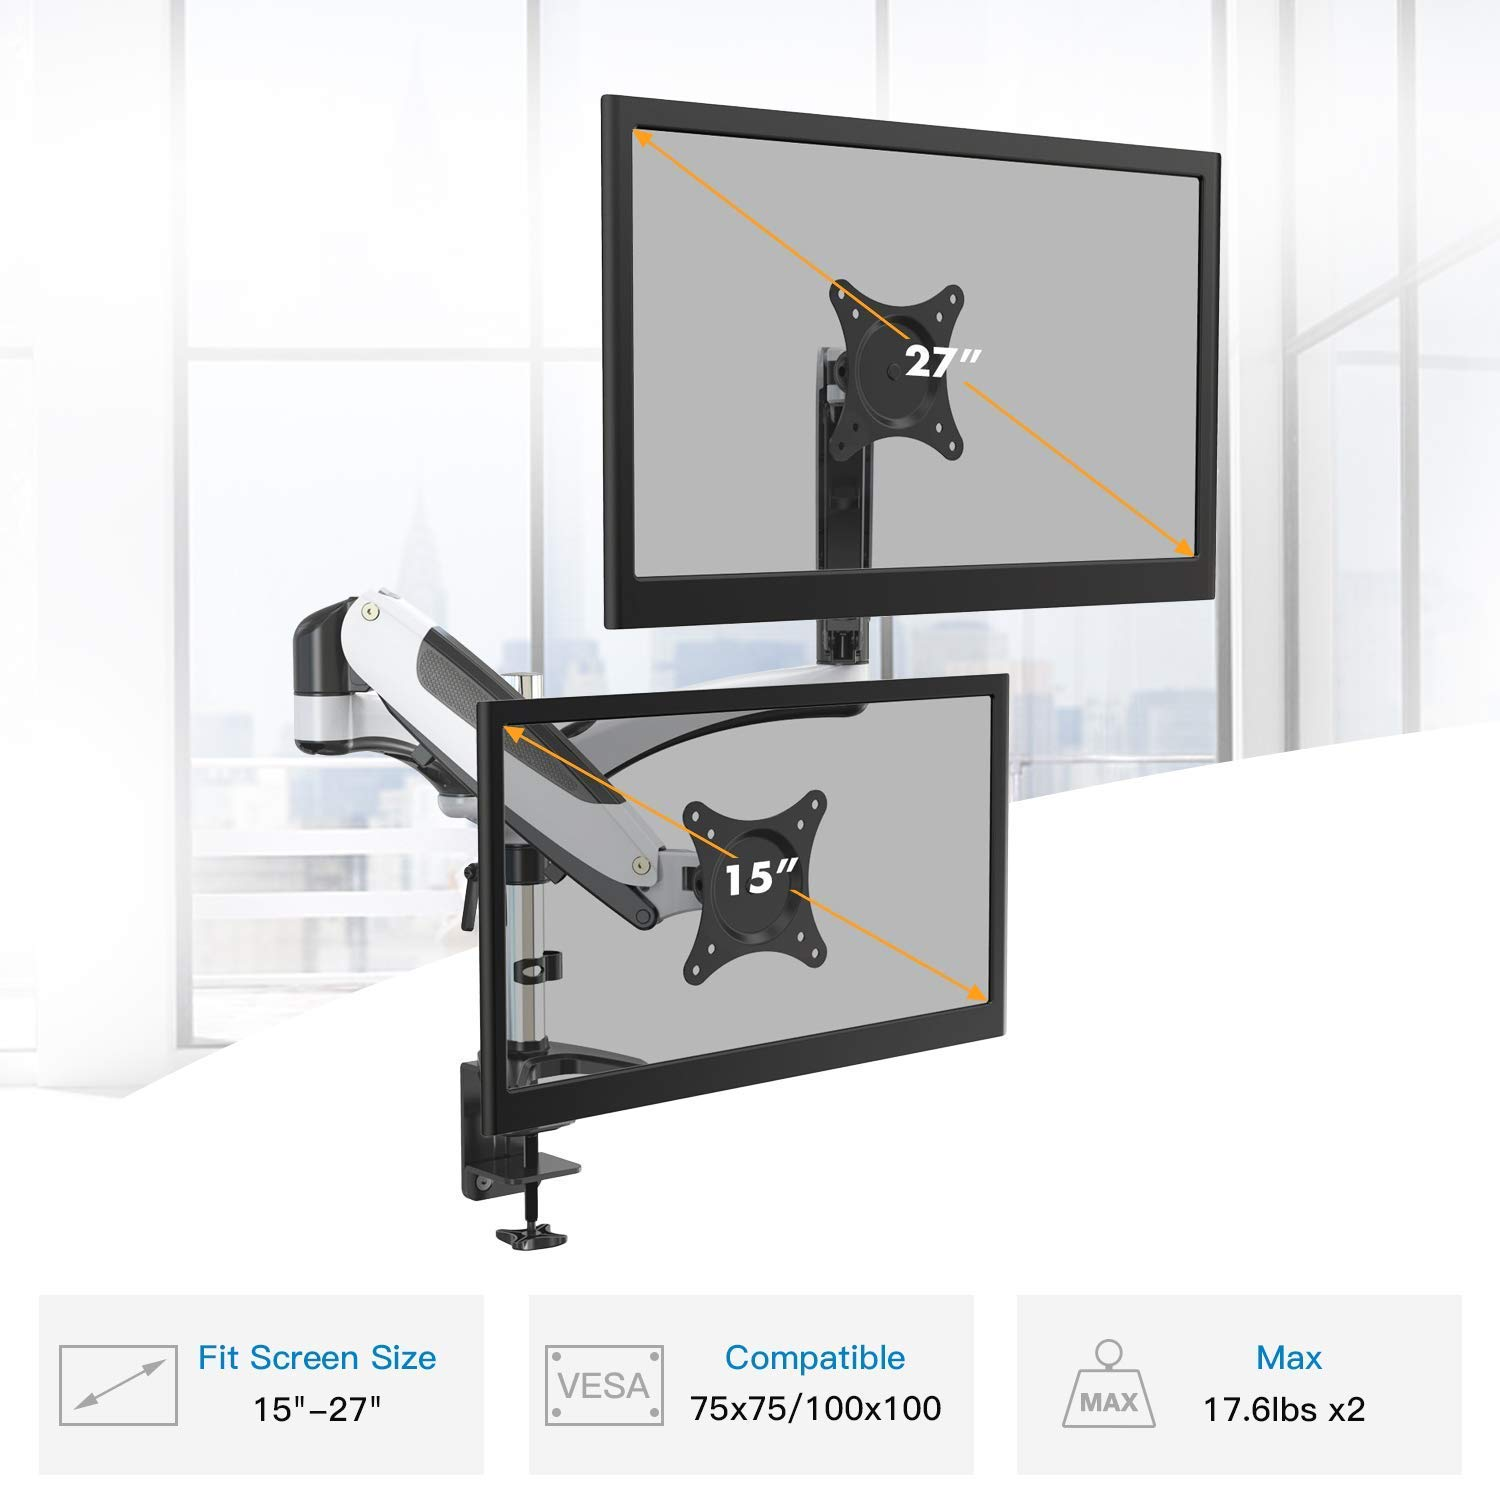 HUANUO Dual Monitor Mount, Increase Productivity & Prevent Neck/Shoulder Pain! Computer Arm Improves Body Posture, Monitor Arm Reduces Screen Glare! Clutter-Free Desk, Premium Computer Monitor Stand!